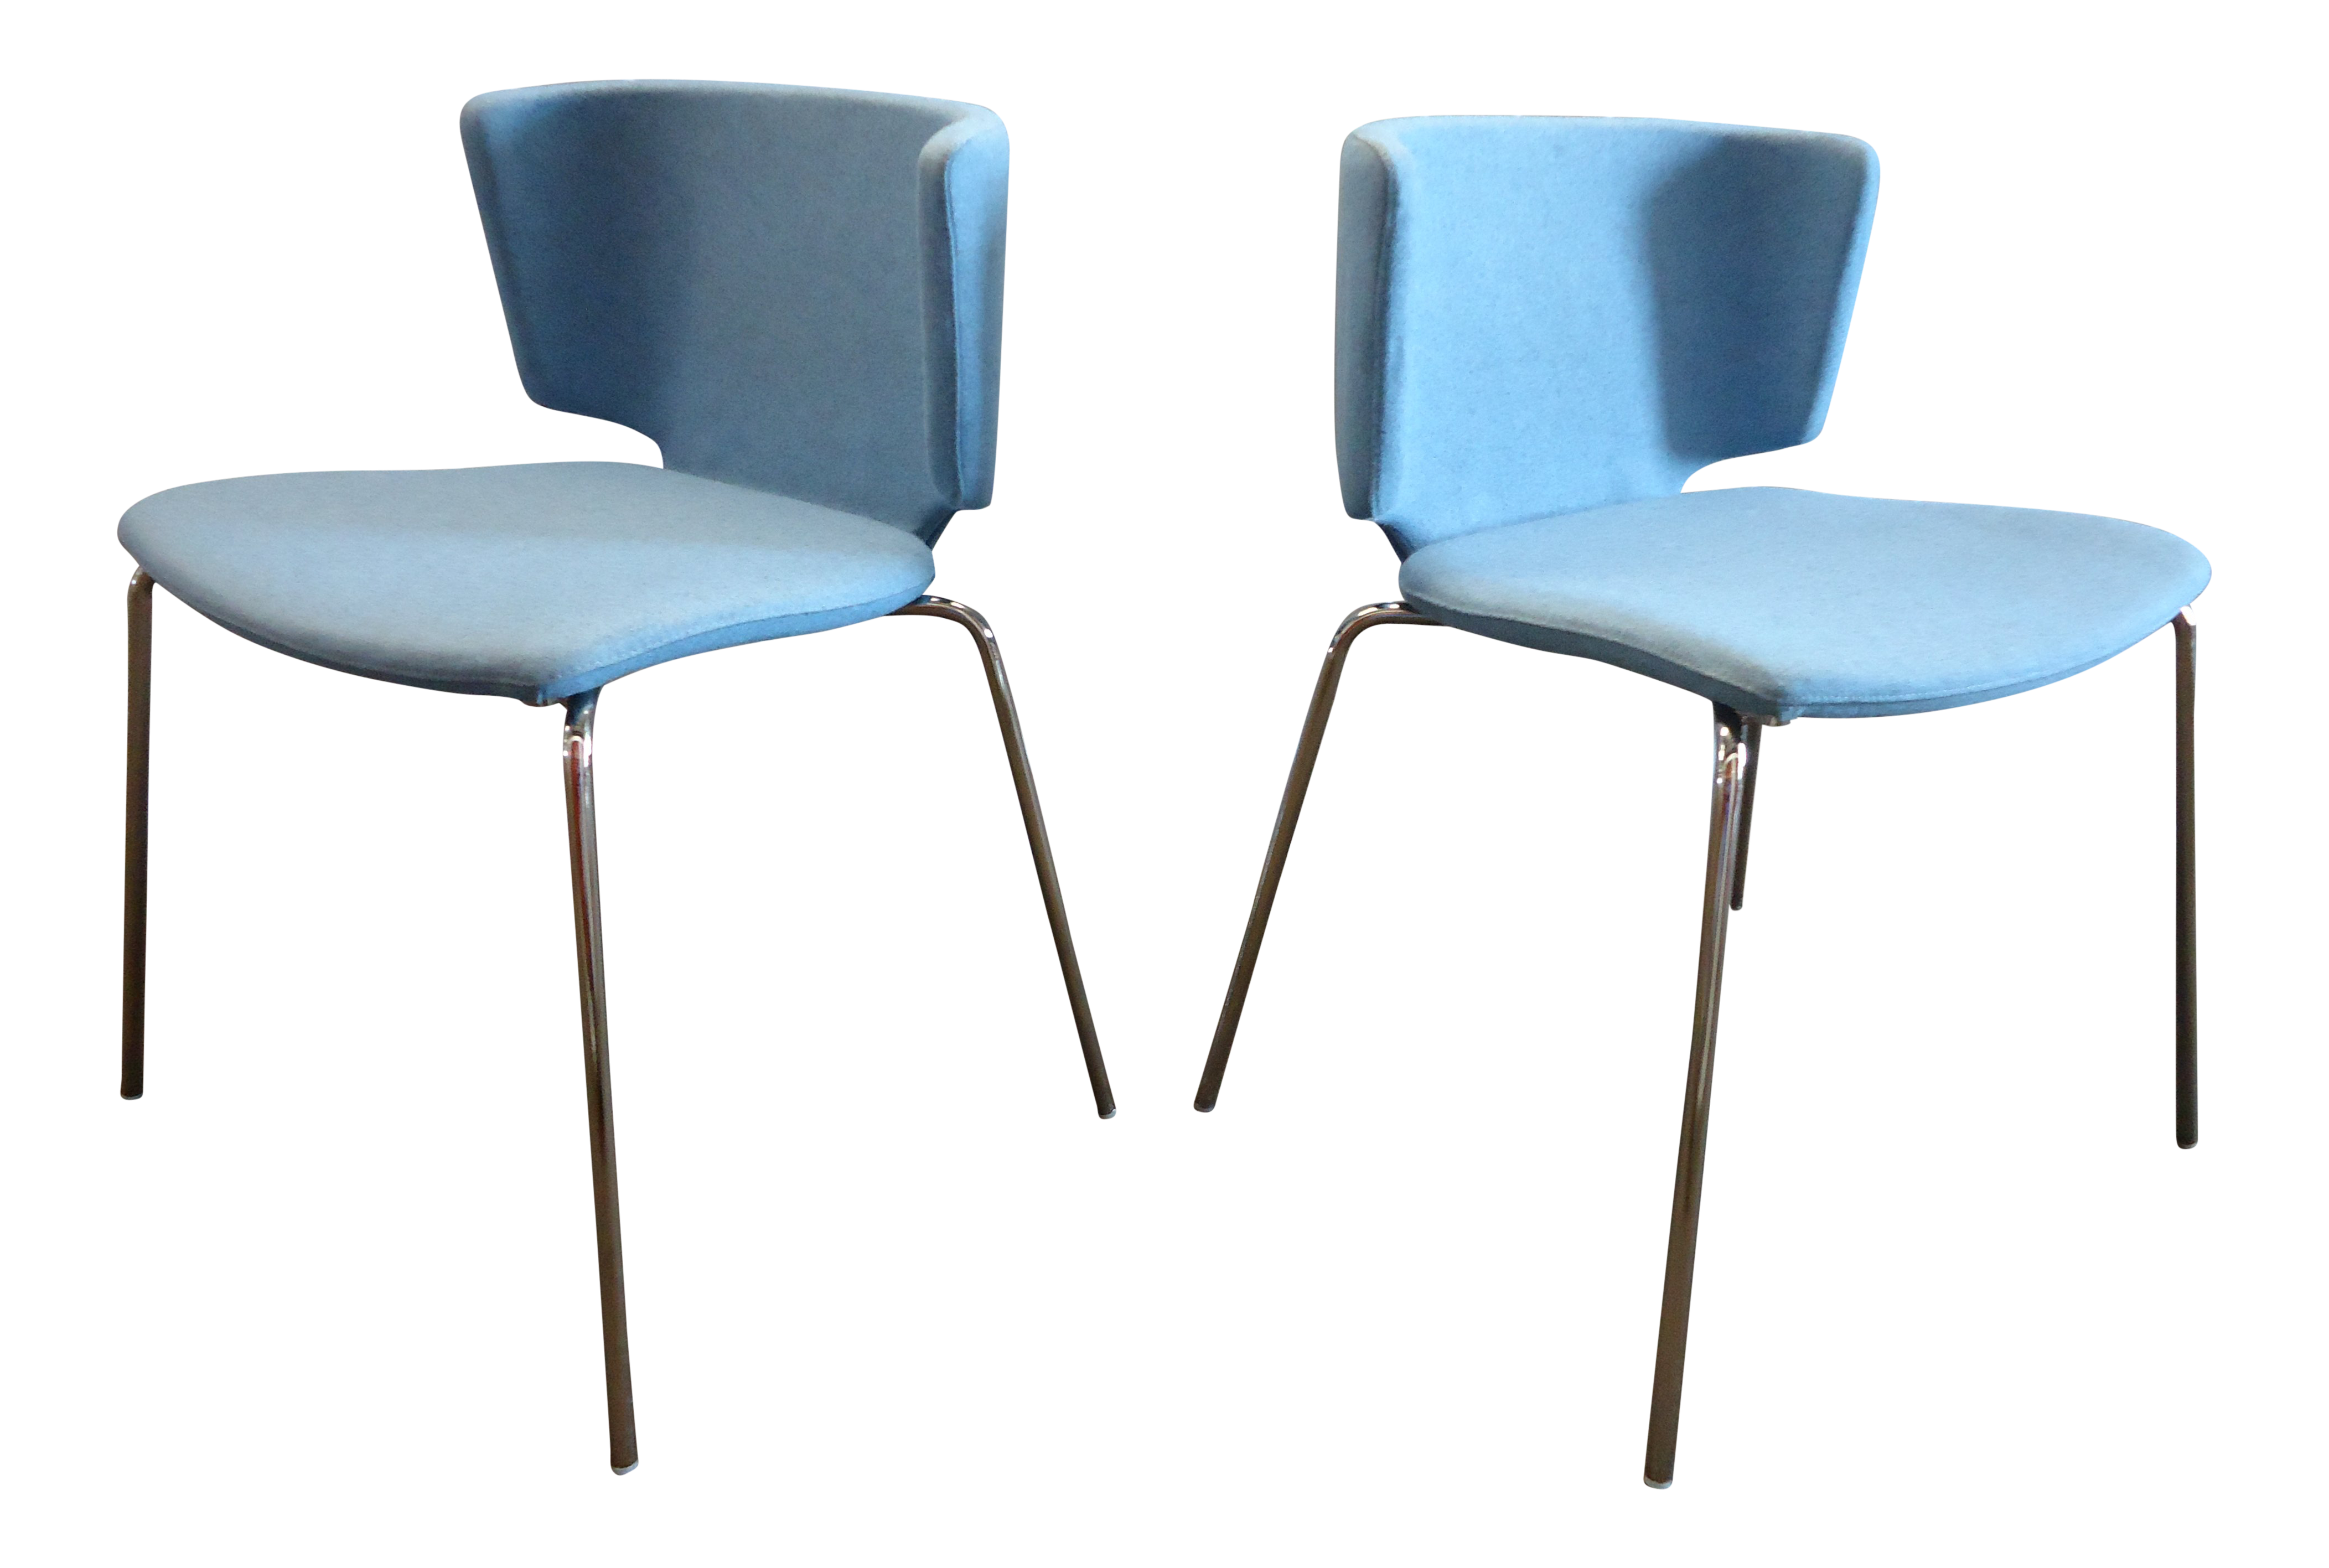 coalesse wrapp chair folding rentals queens ny spain mark krusin modern stackable blue guest chairs a pair for sale